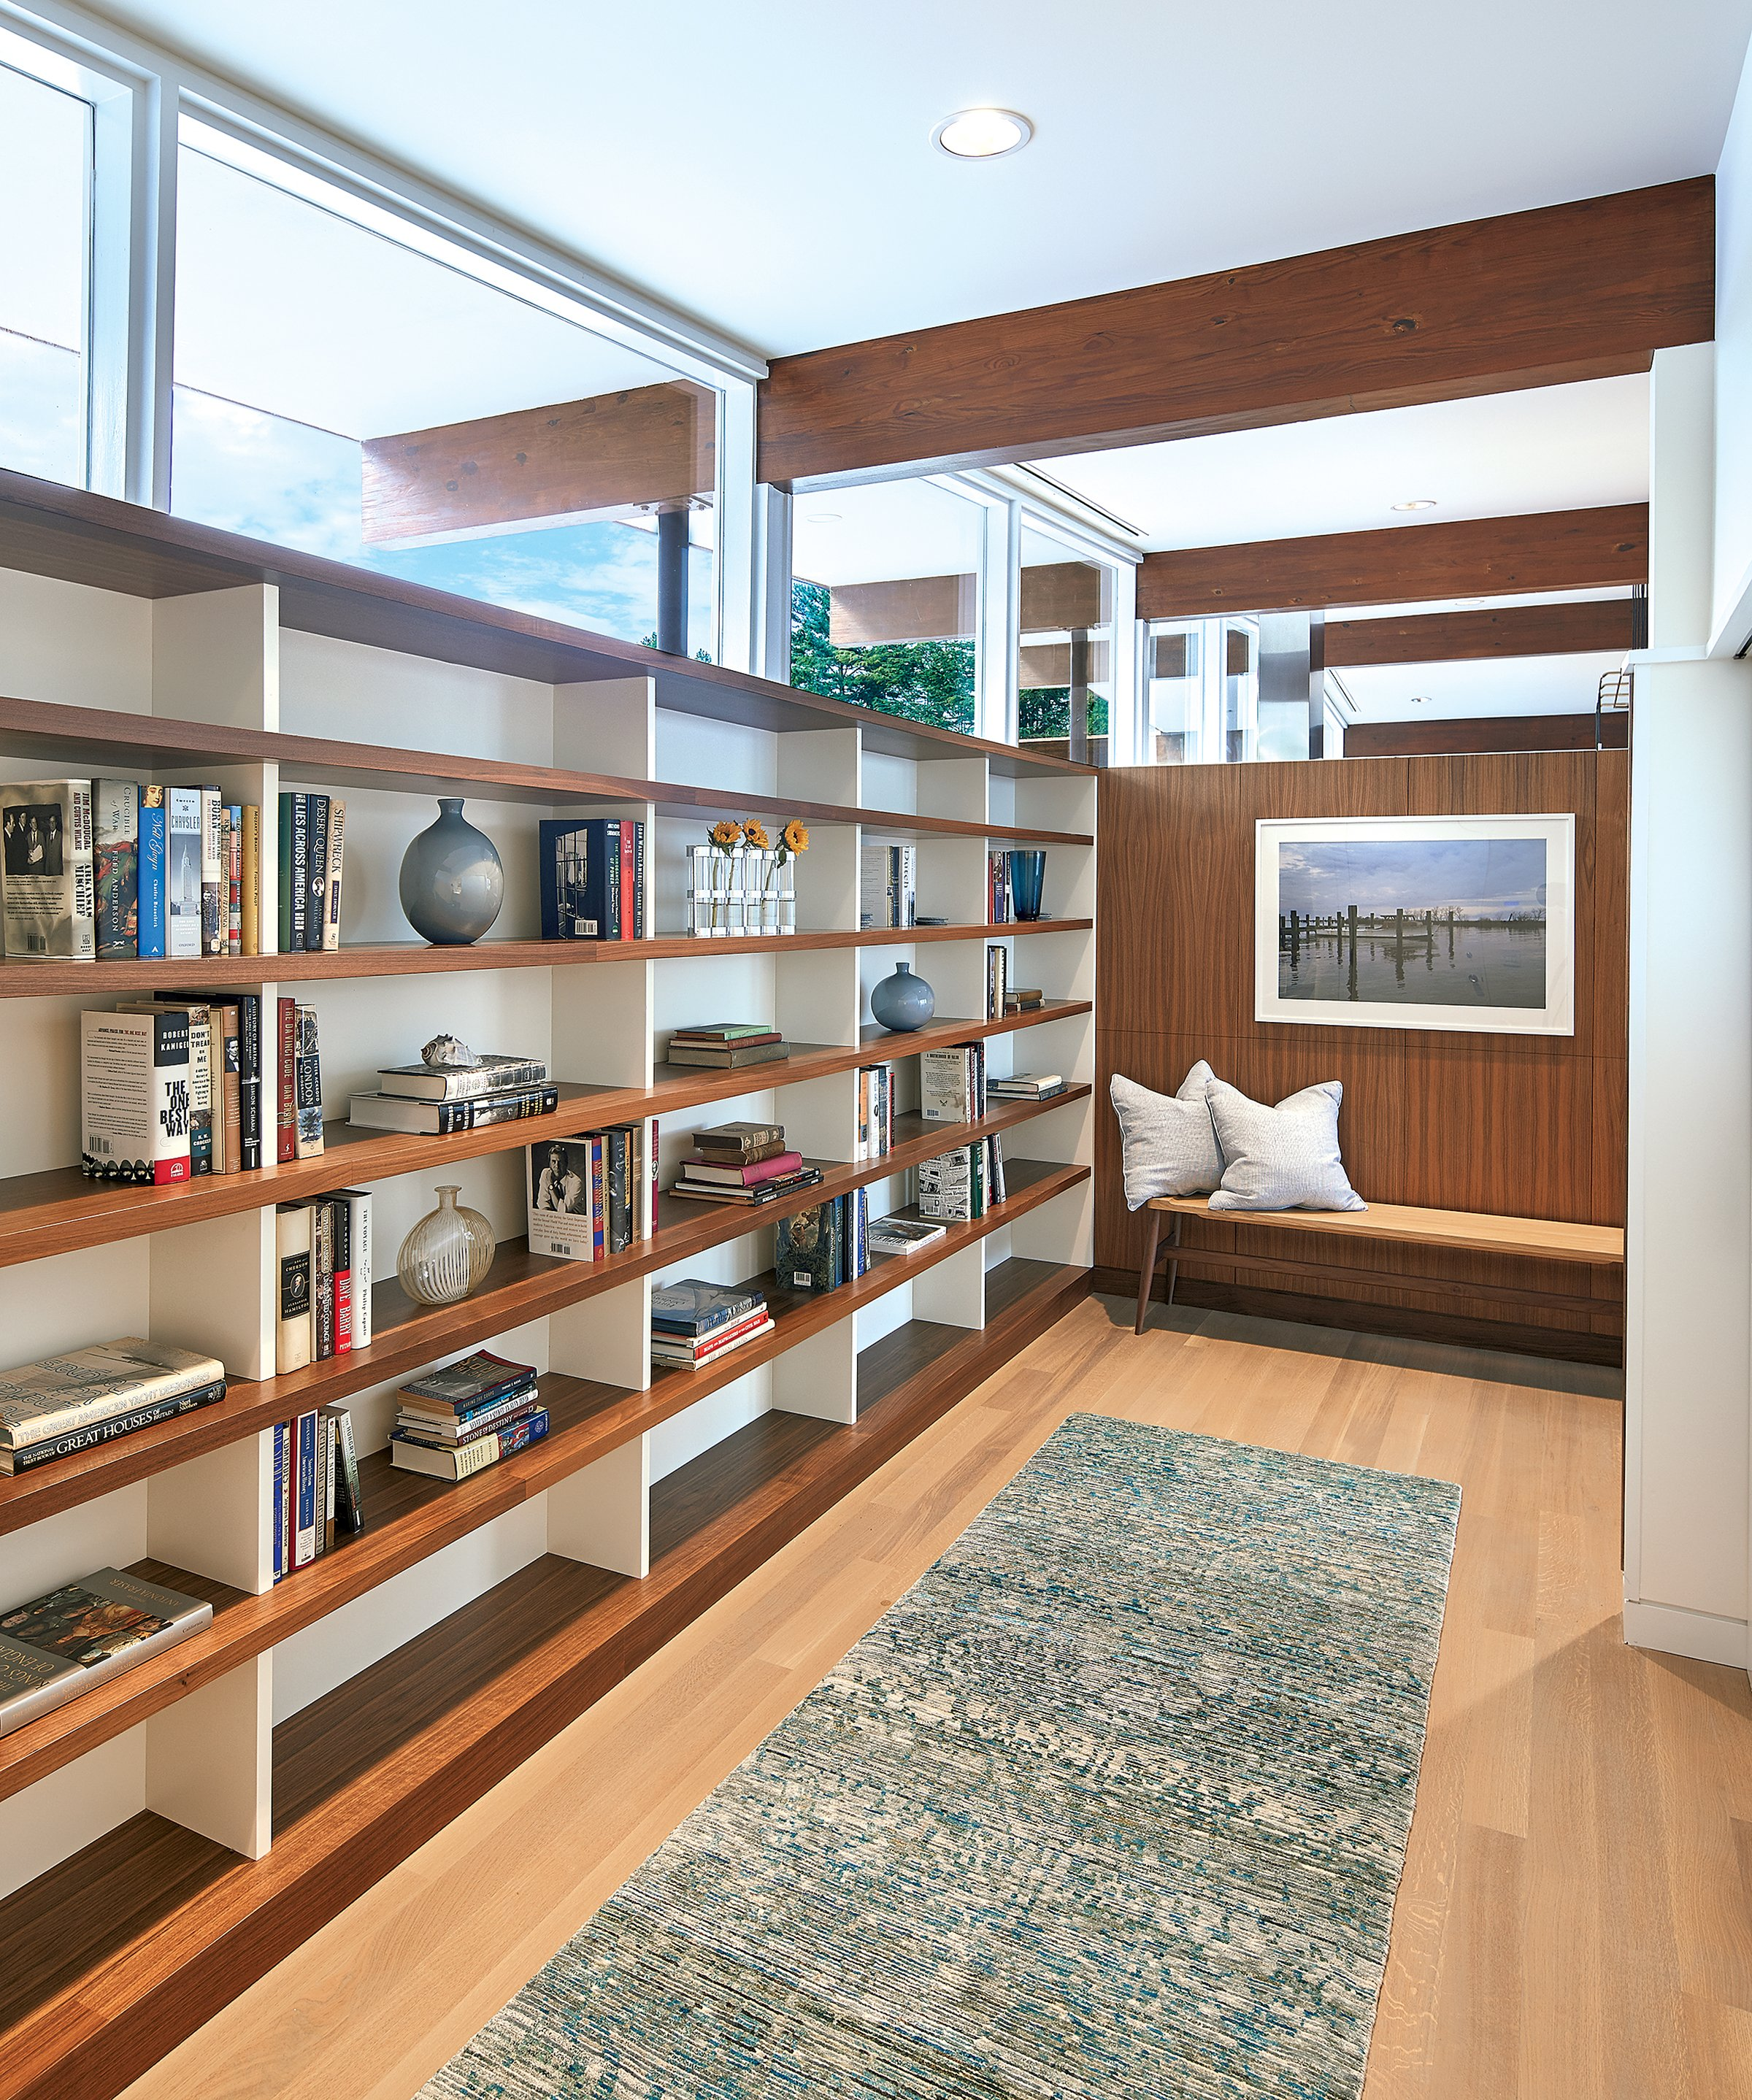 The architects added built-in shelves to the entryway, further emphasizing the clerestory windows above them.